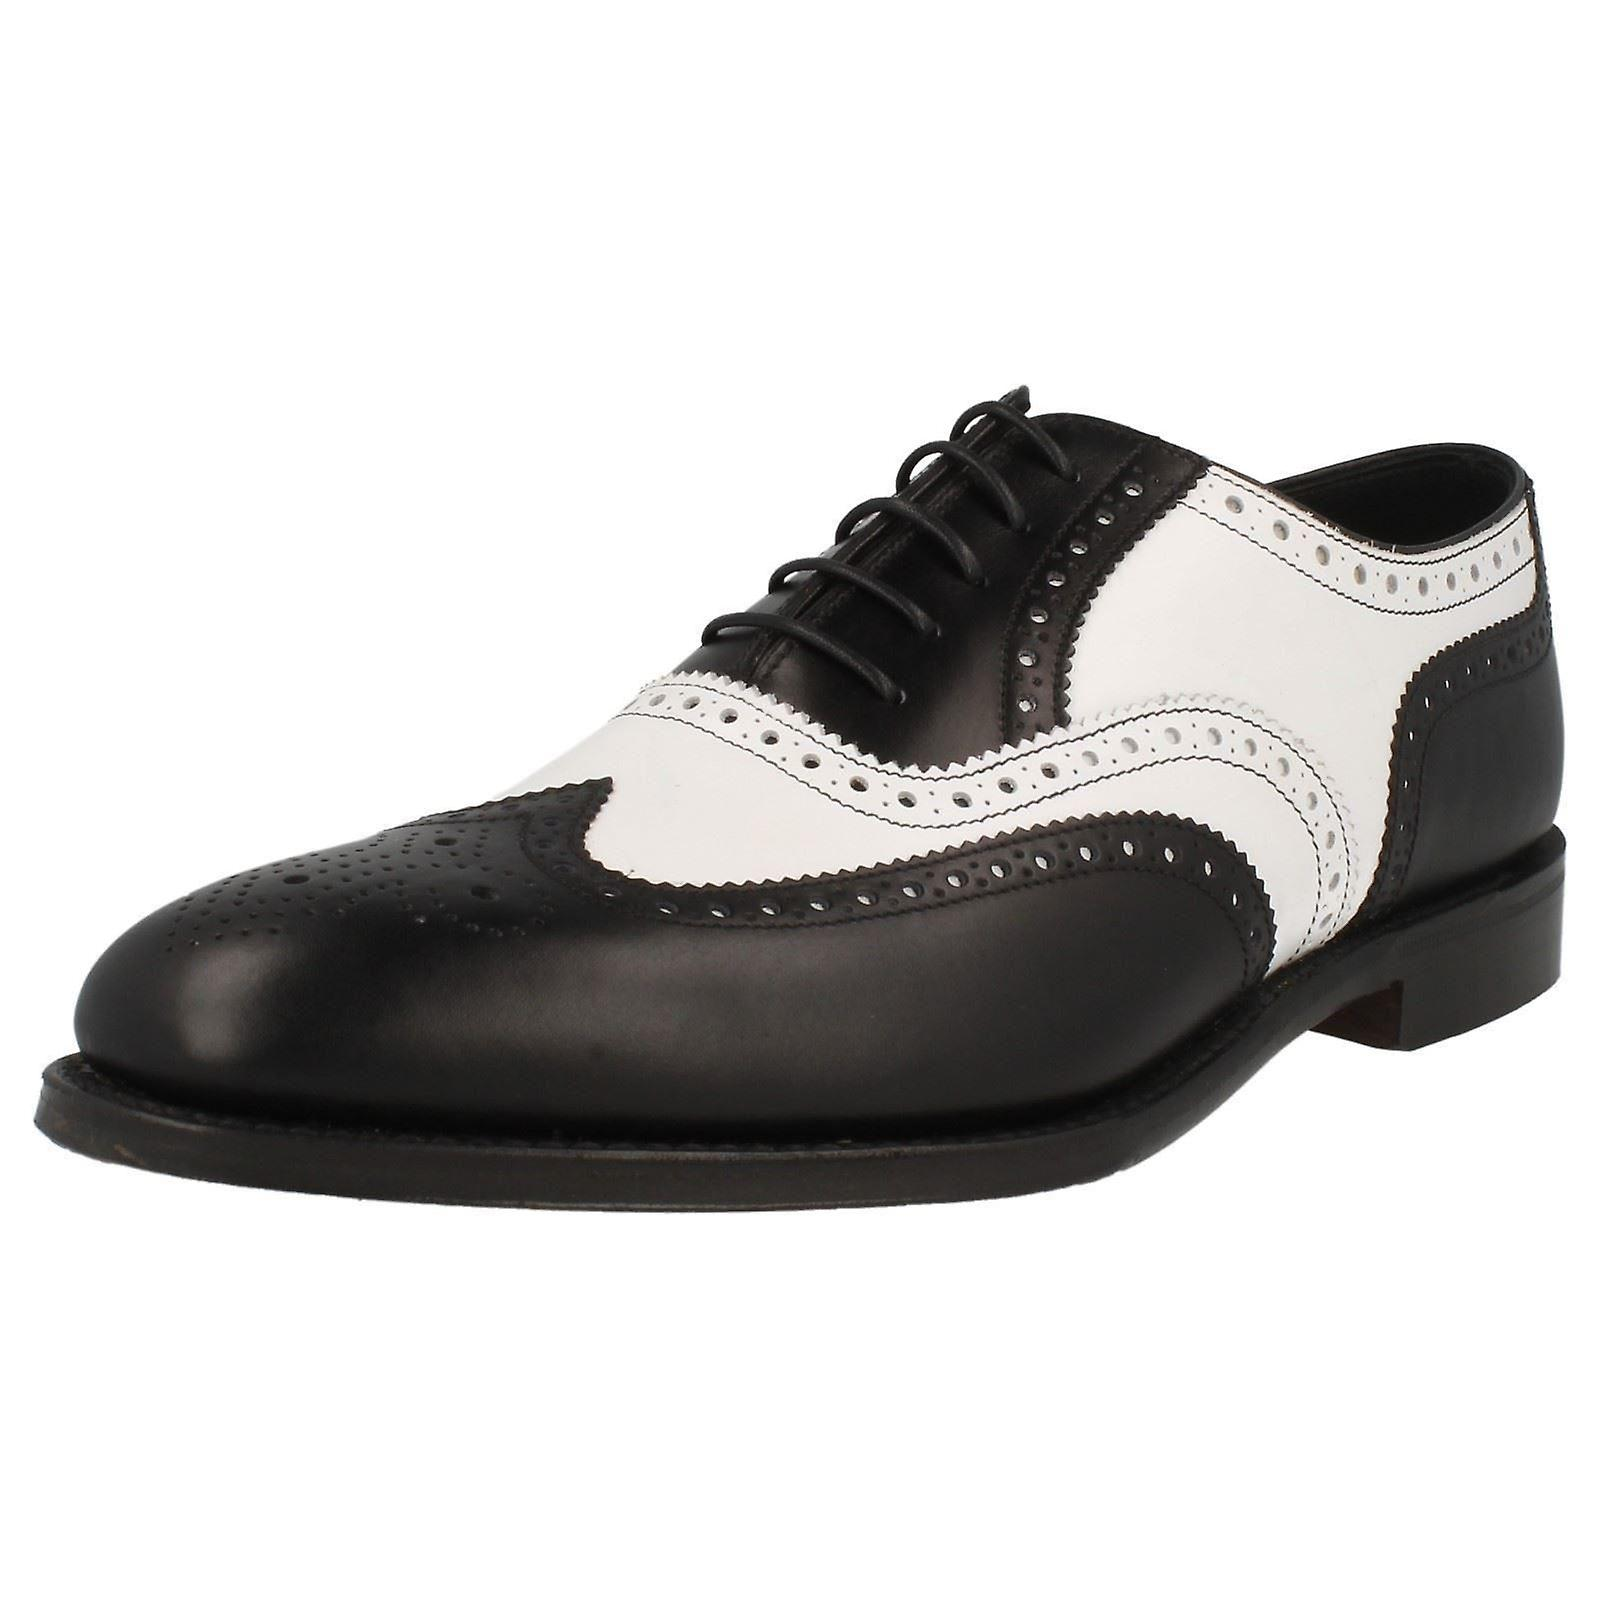 Mens Loake Classic deux ton Brogue Lace Up chaussures - Sloane